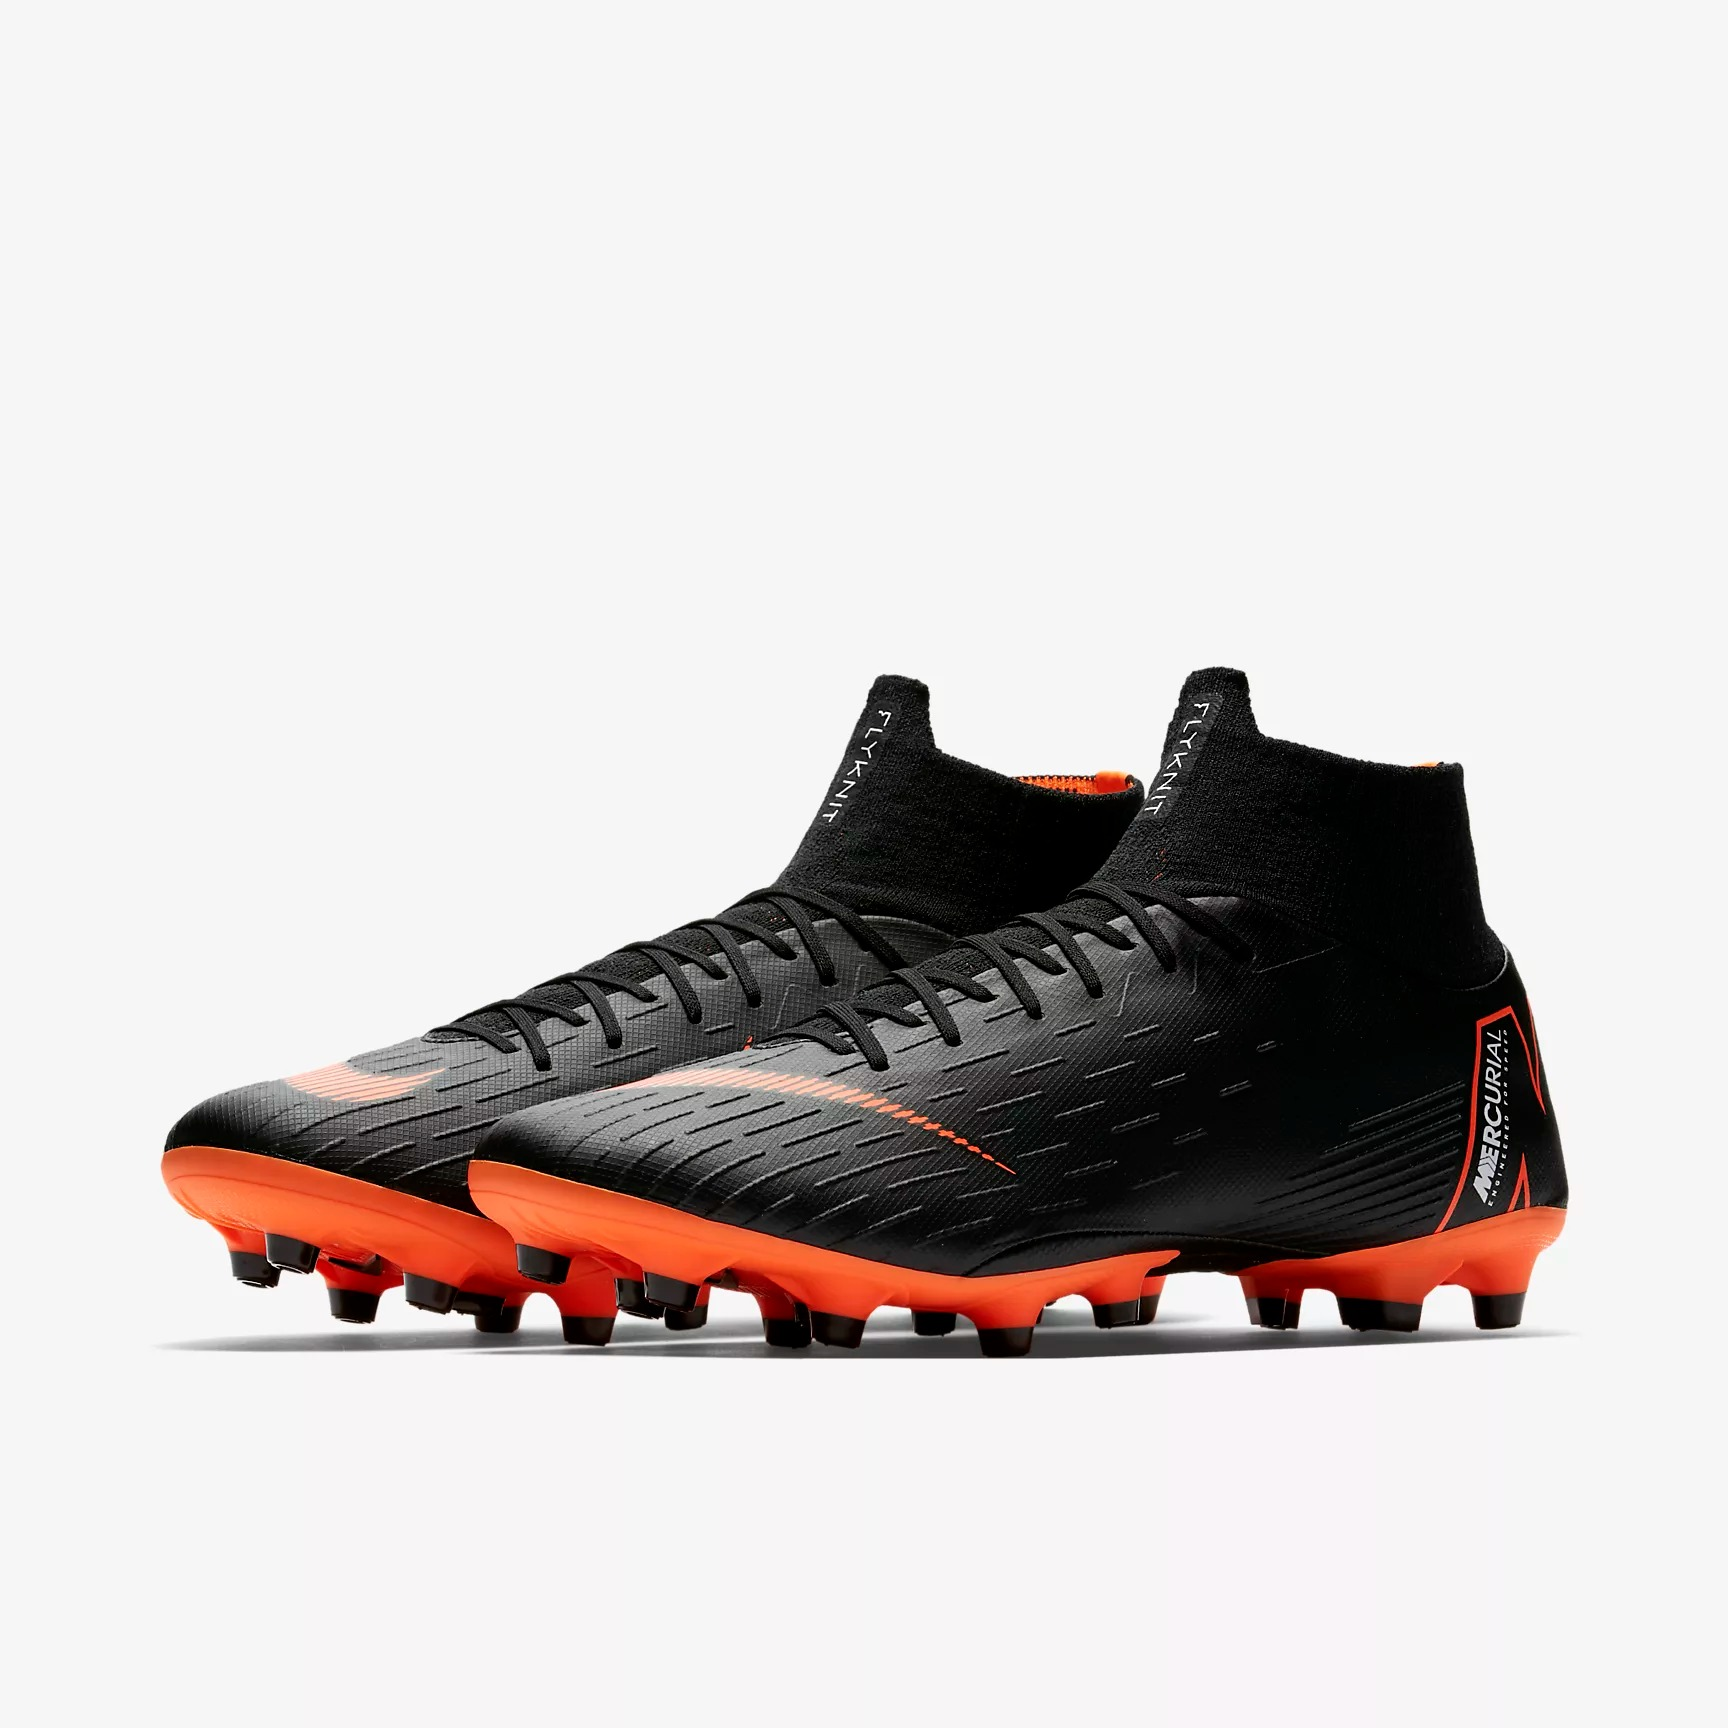 bf6a970a1415 Nike Mercurial Superfly 6 Pro AG-PRO Soccer Cleats - Soccer Cleats Nike  Football Boots - Superfanas.lt